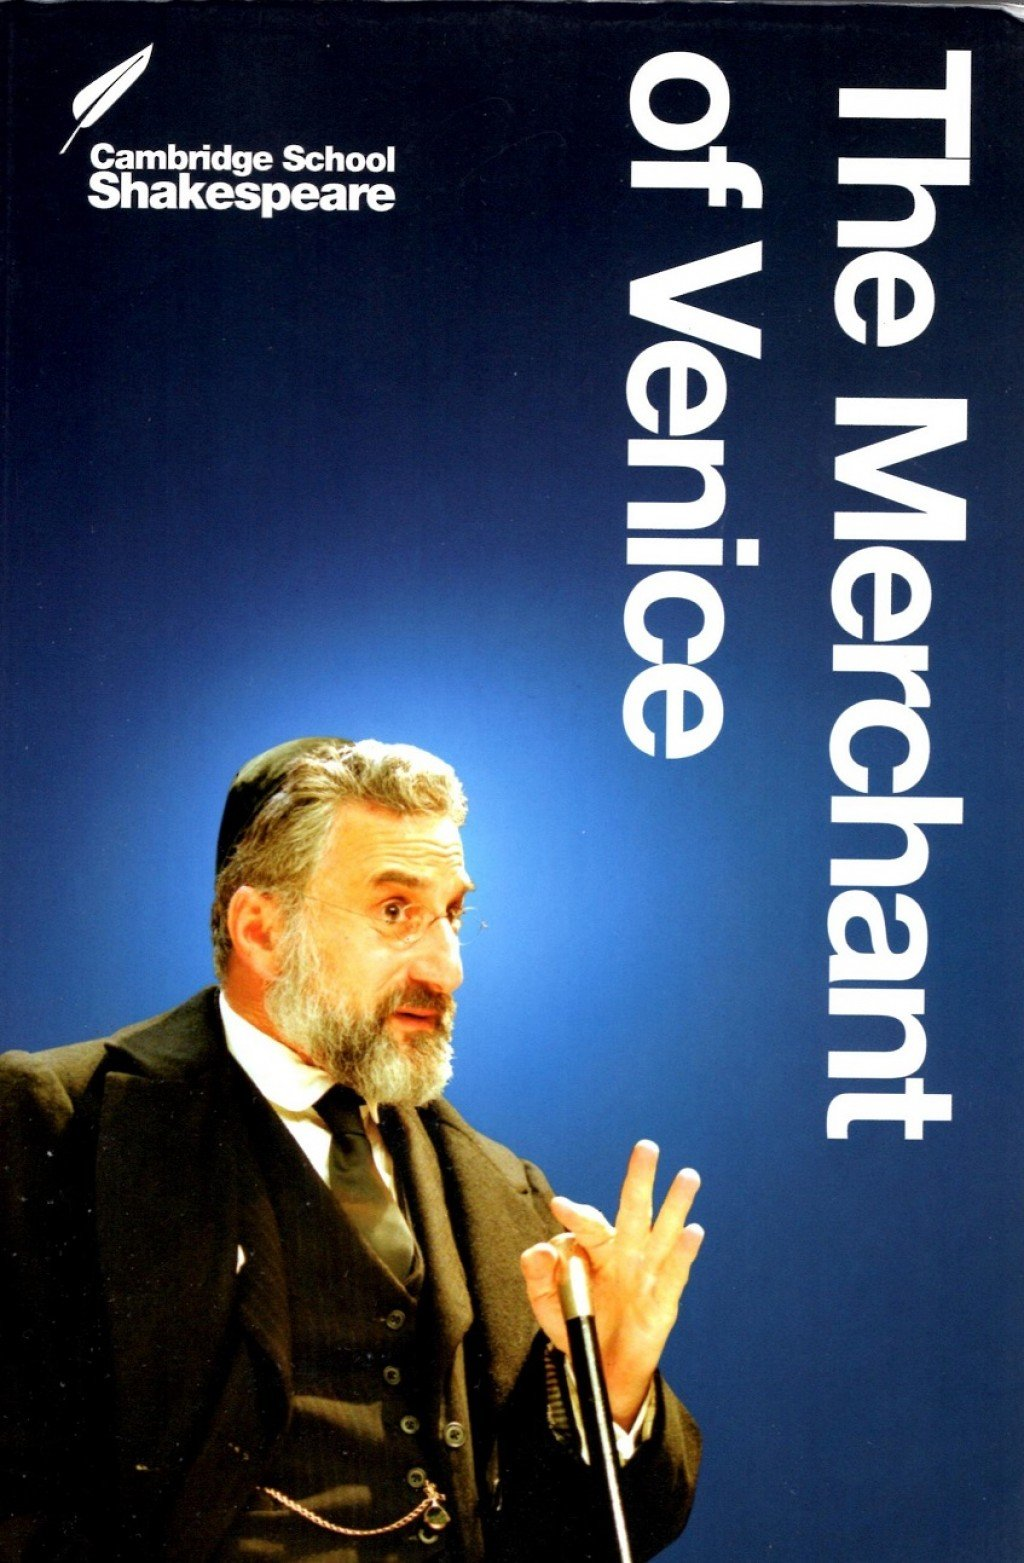 ... shylock victim or villian the merchant of venice shylock victim or